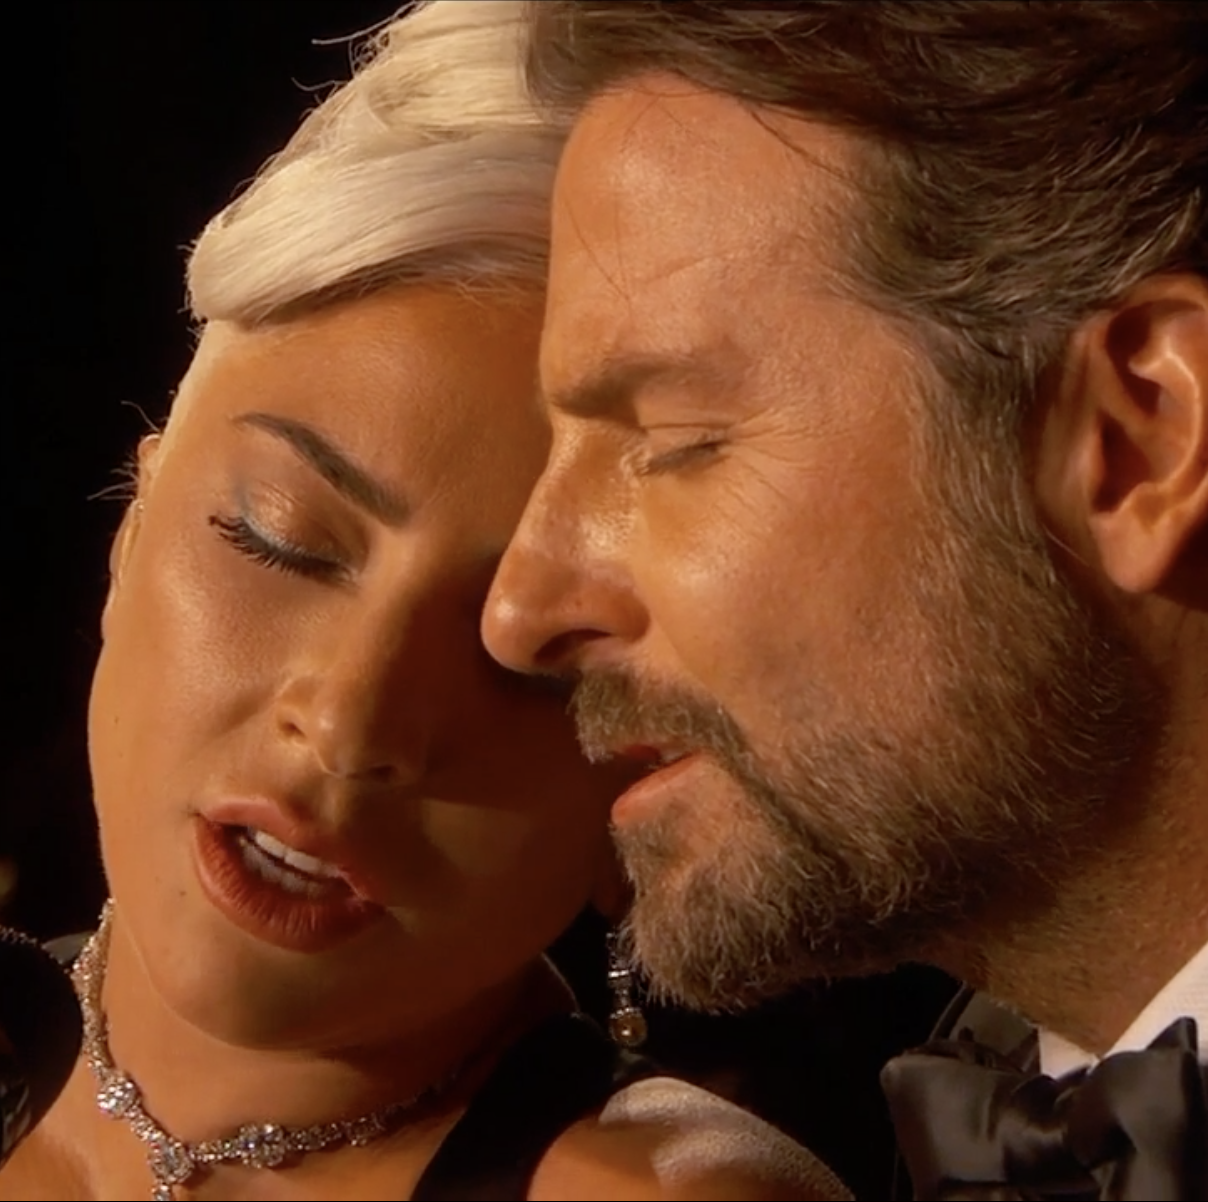 Lady Gaga and Bradley Cooper Gave the Most Intimate Performance the Oscars Has Ever Seen